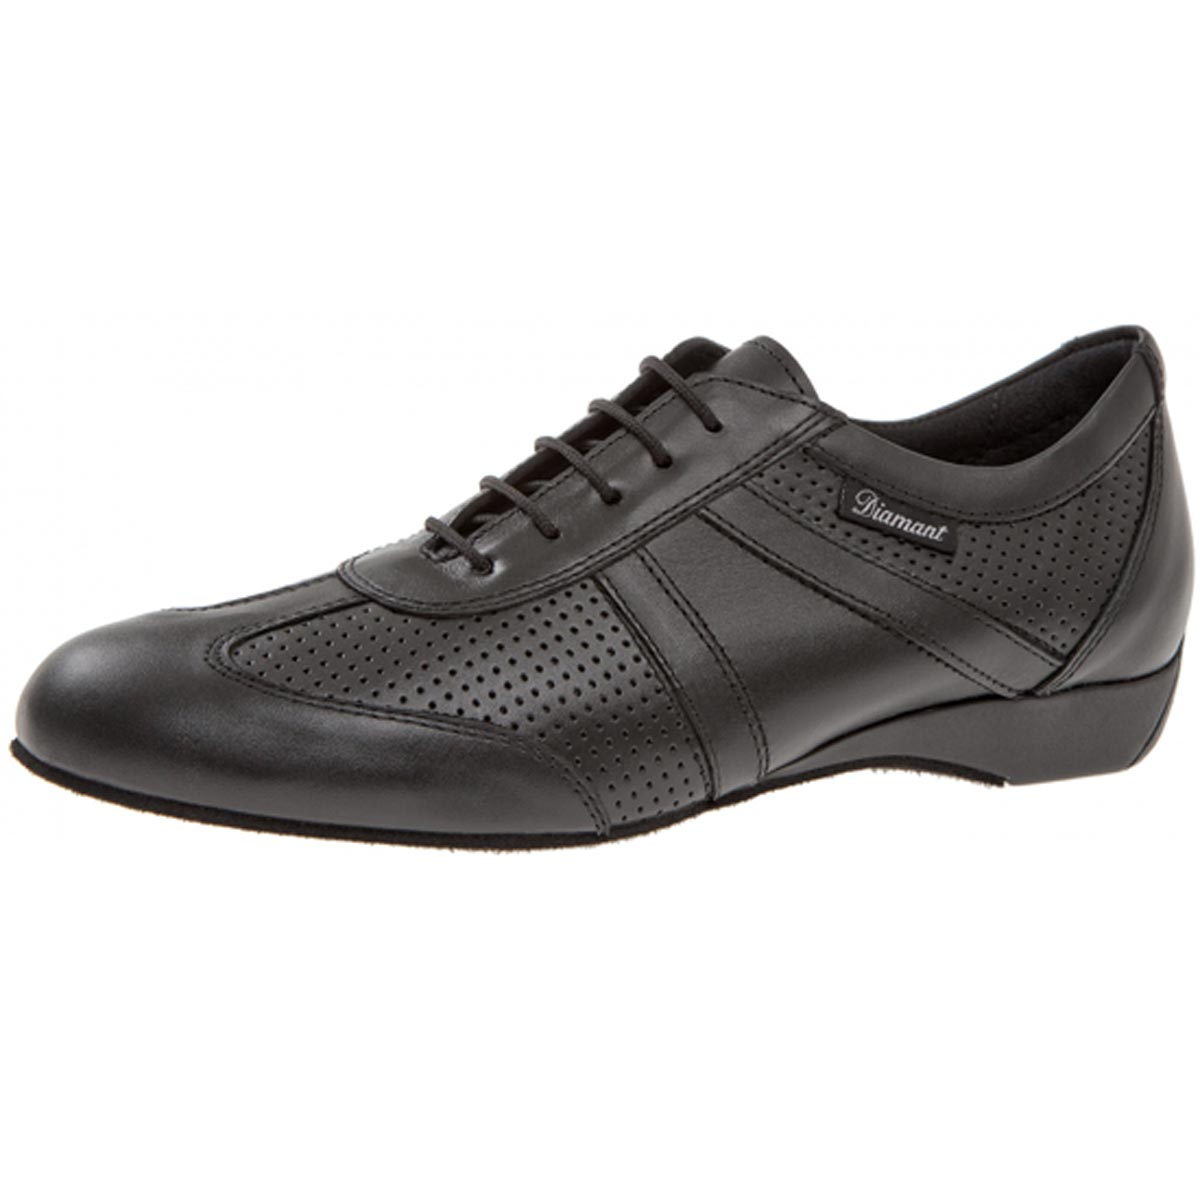 Mens Ballroom Shoes Leather Sole Wide